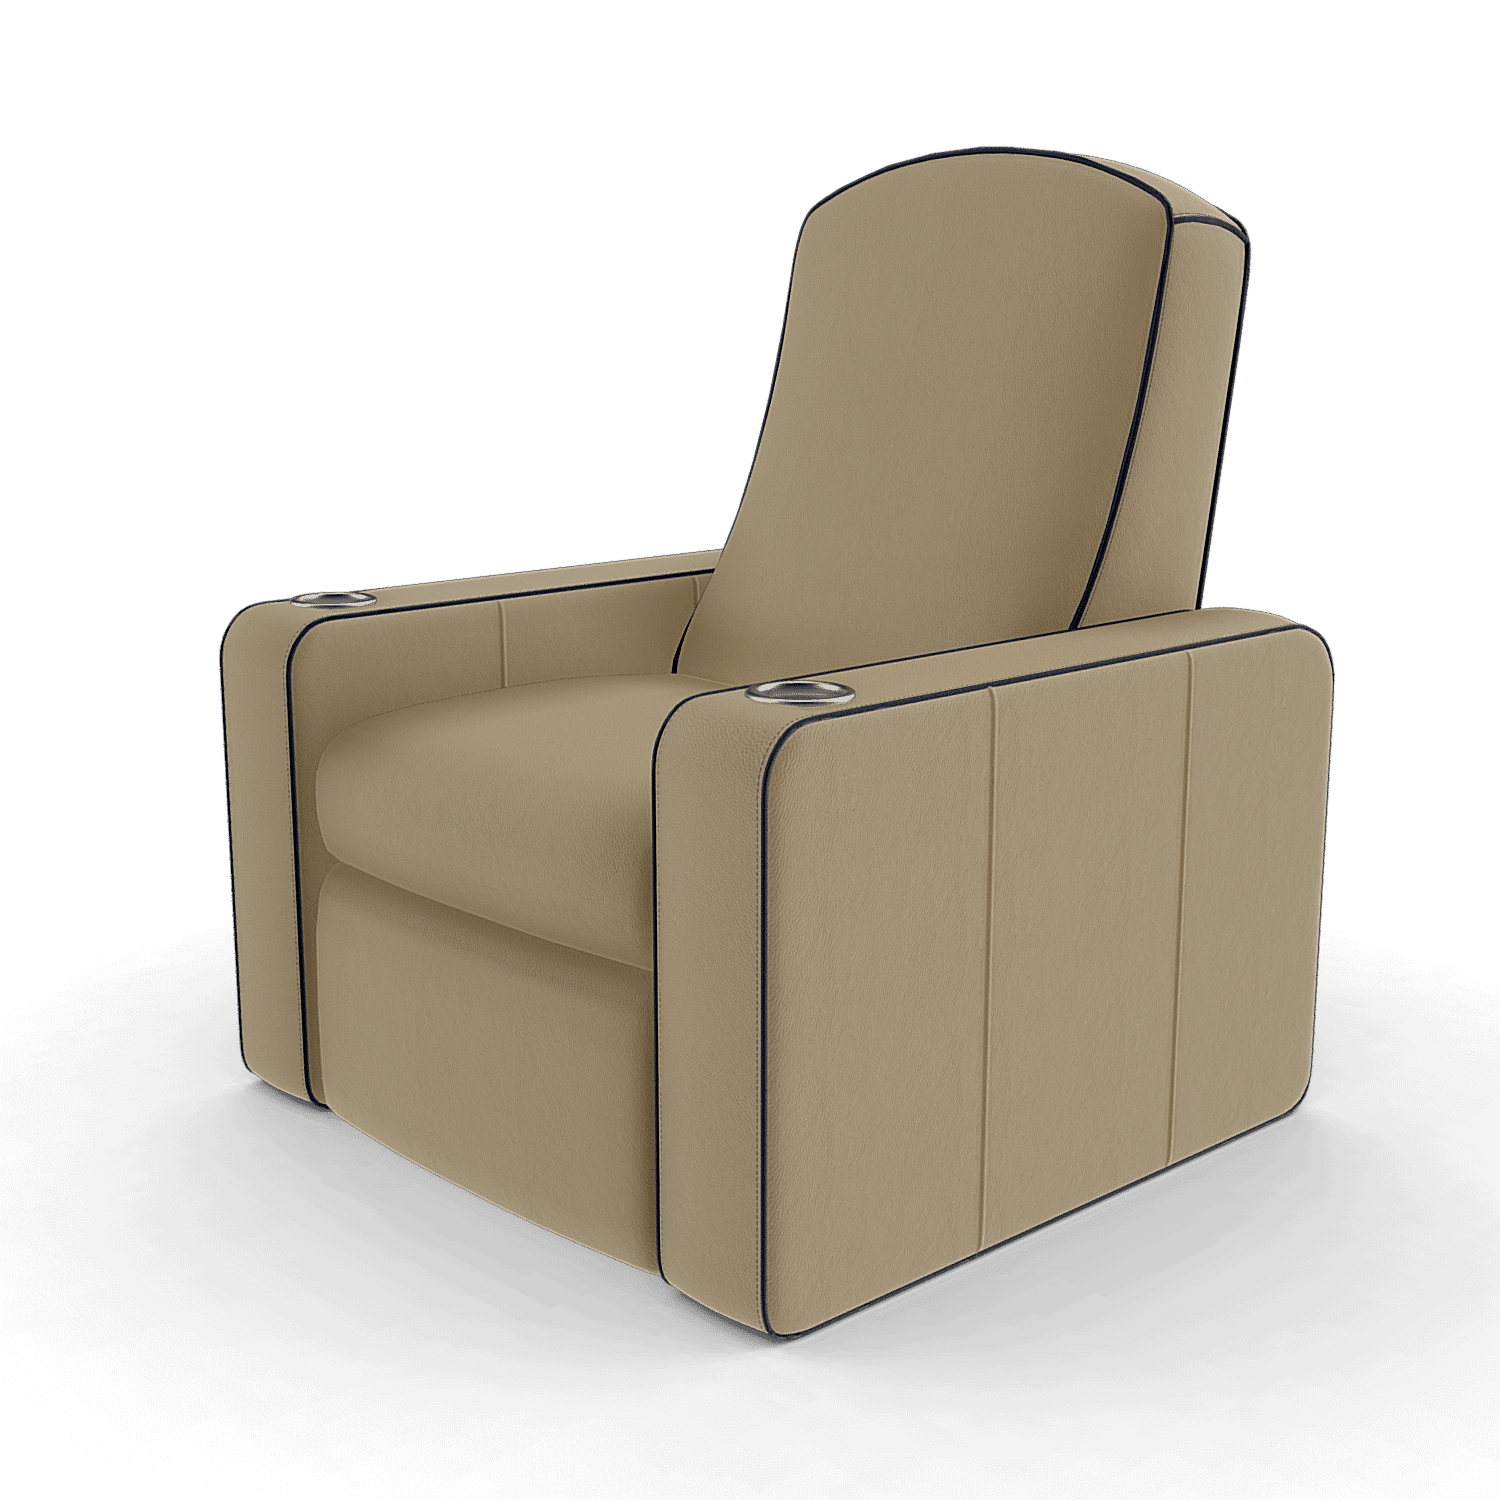 Home cinema chairs n5 cream